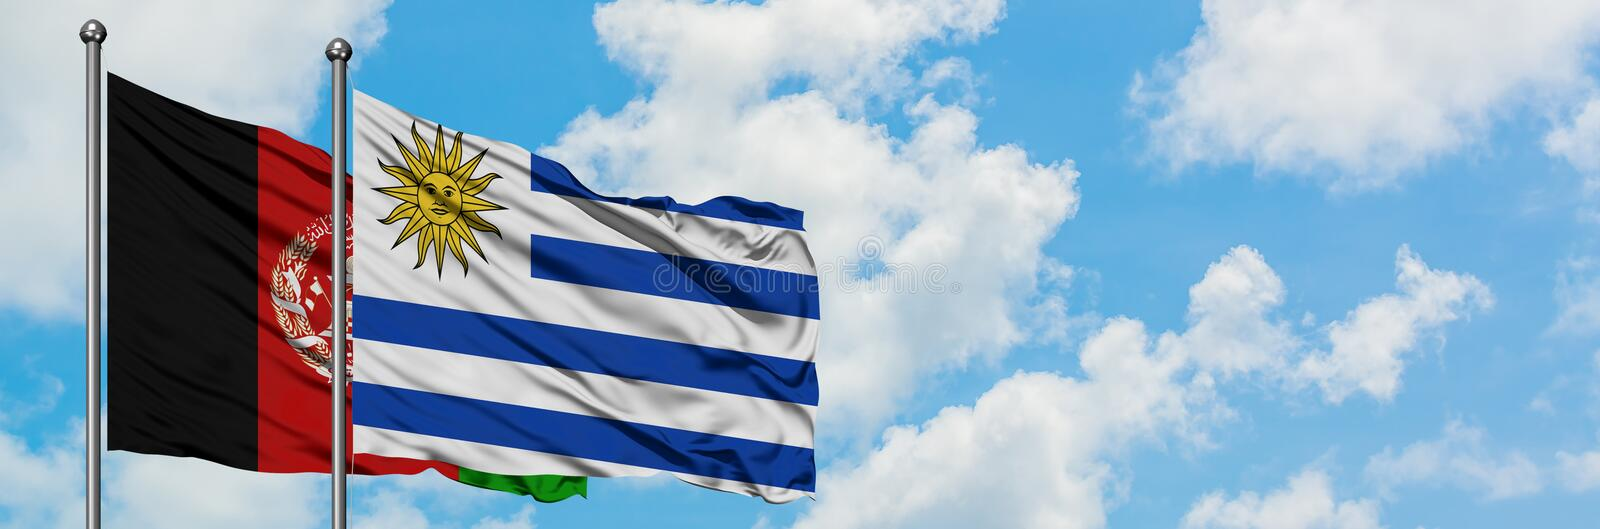 Afghanistan and Uruguay flag waving in the wind against white cloudy blue sky together. Diplomacy concept, international relations.  stock photography